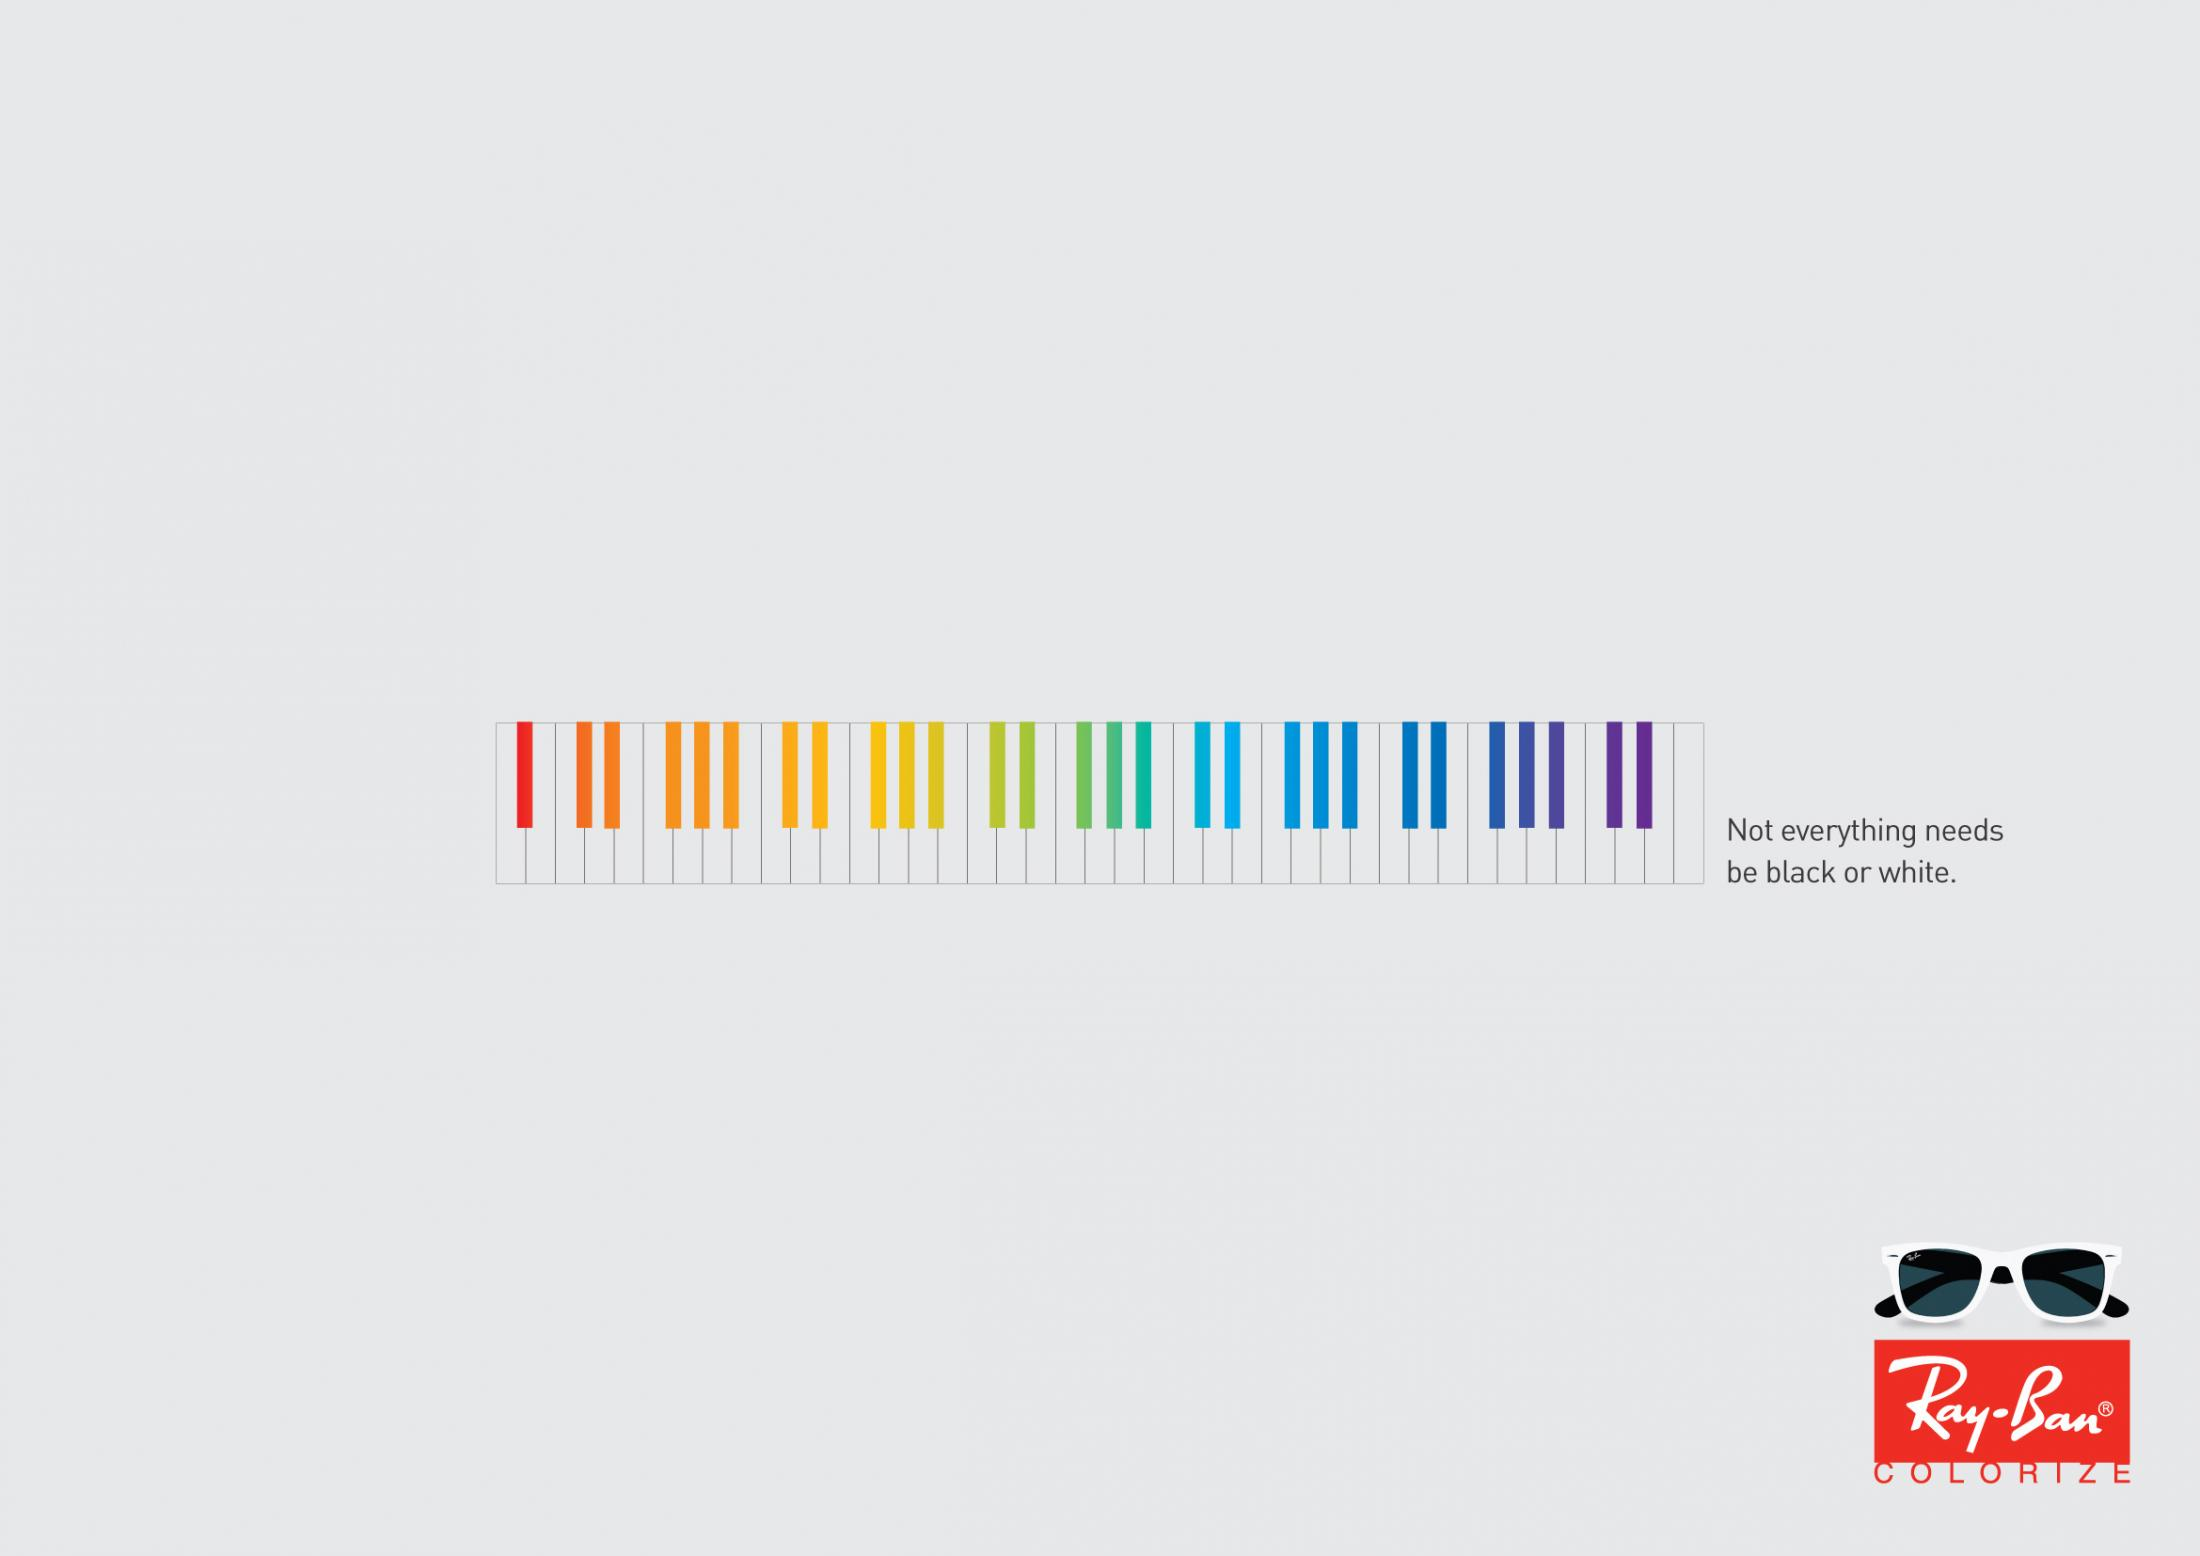 Ray-Ban Print Ad -  Black or White, Piano keys